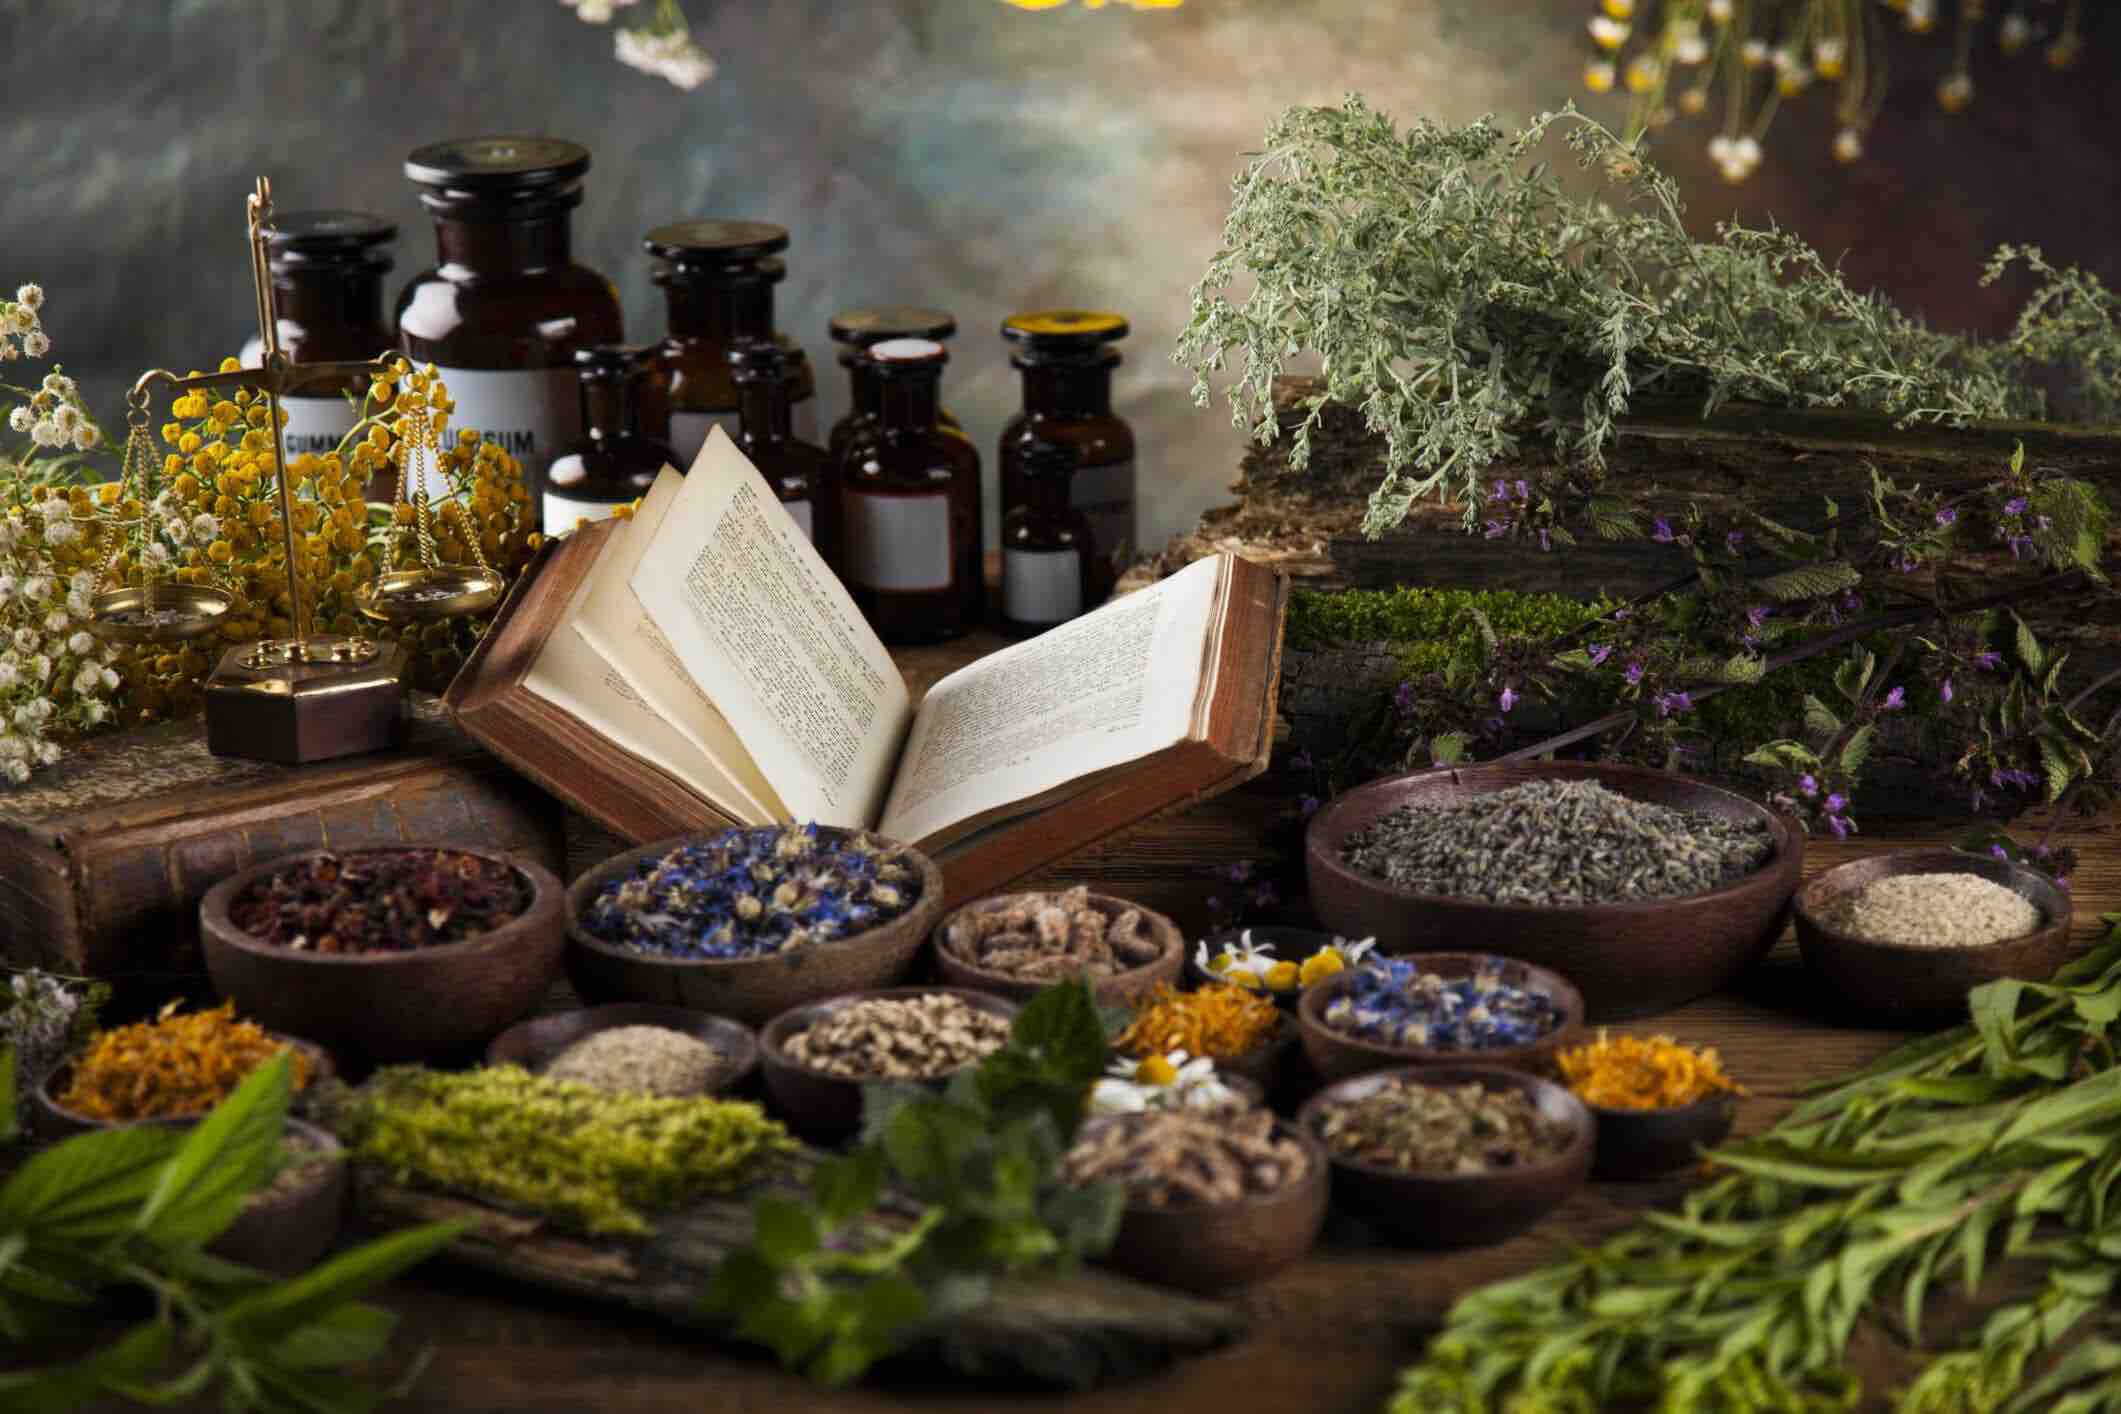 Why you should consider naturopathy medicine | Ourgoodbrands